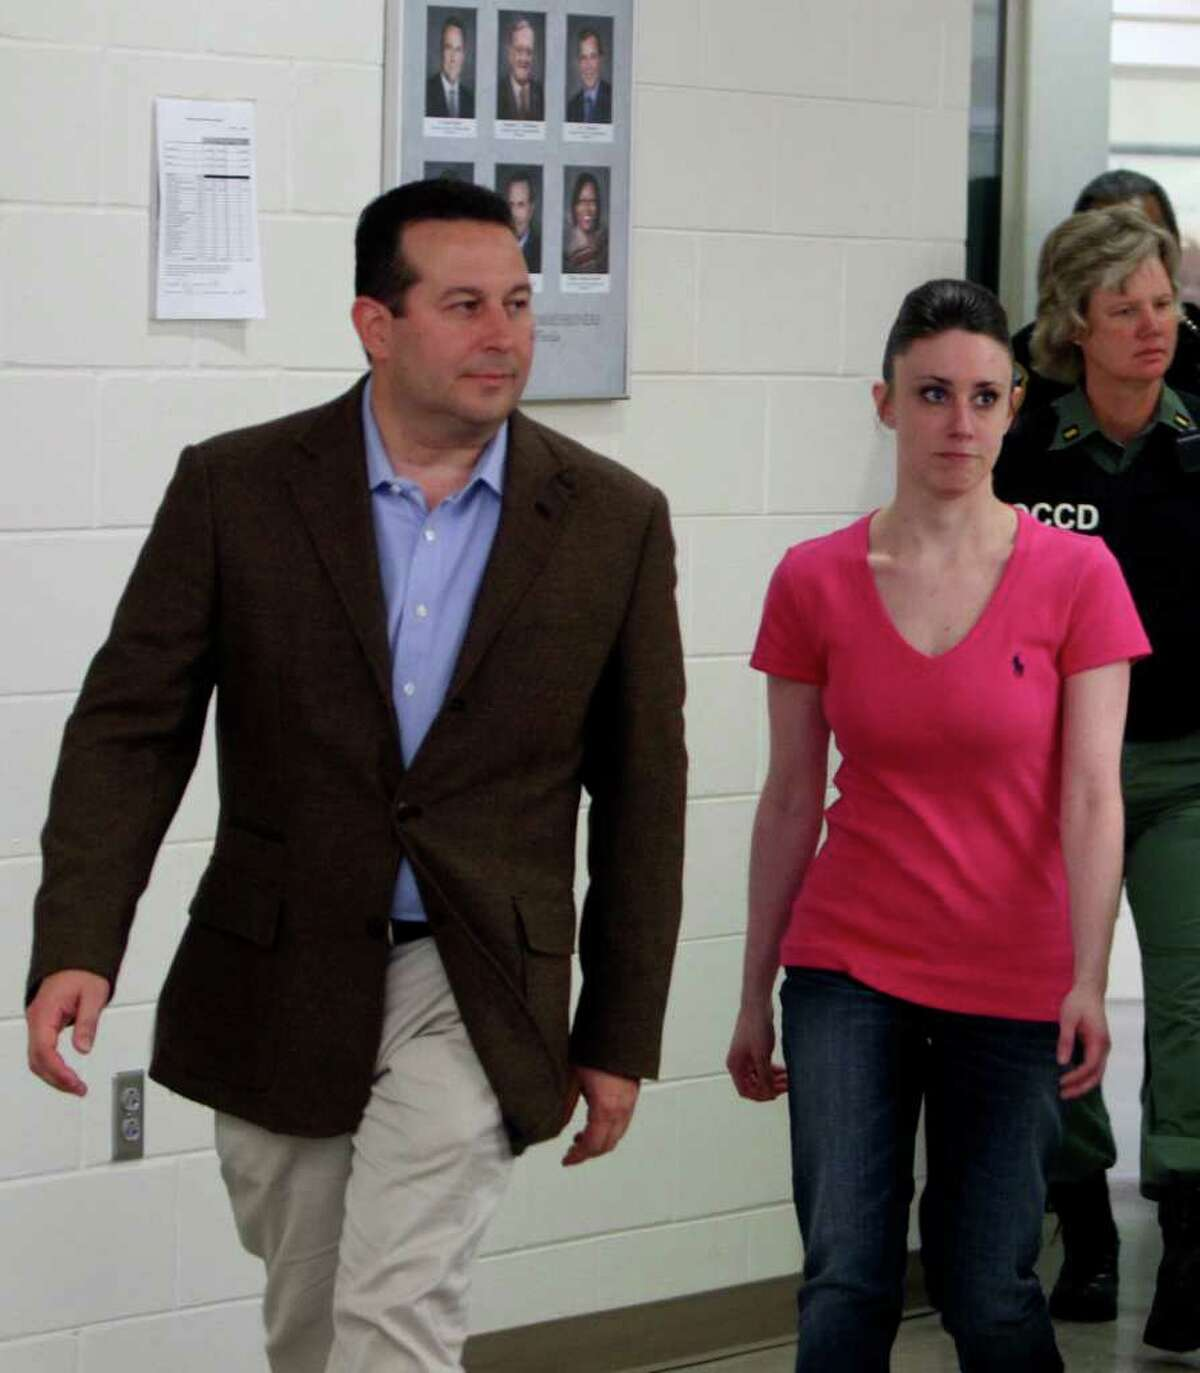 Casey Anthony, front right, walks out of the Orange County Jail with her attorney Jose Baez, left, during her release in Orlando, Fla., early Sunday, July 17, 2011. Anthony was acquitted last week of murder in the death of her daughter, Caylee.